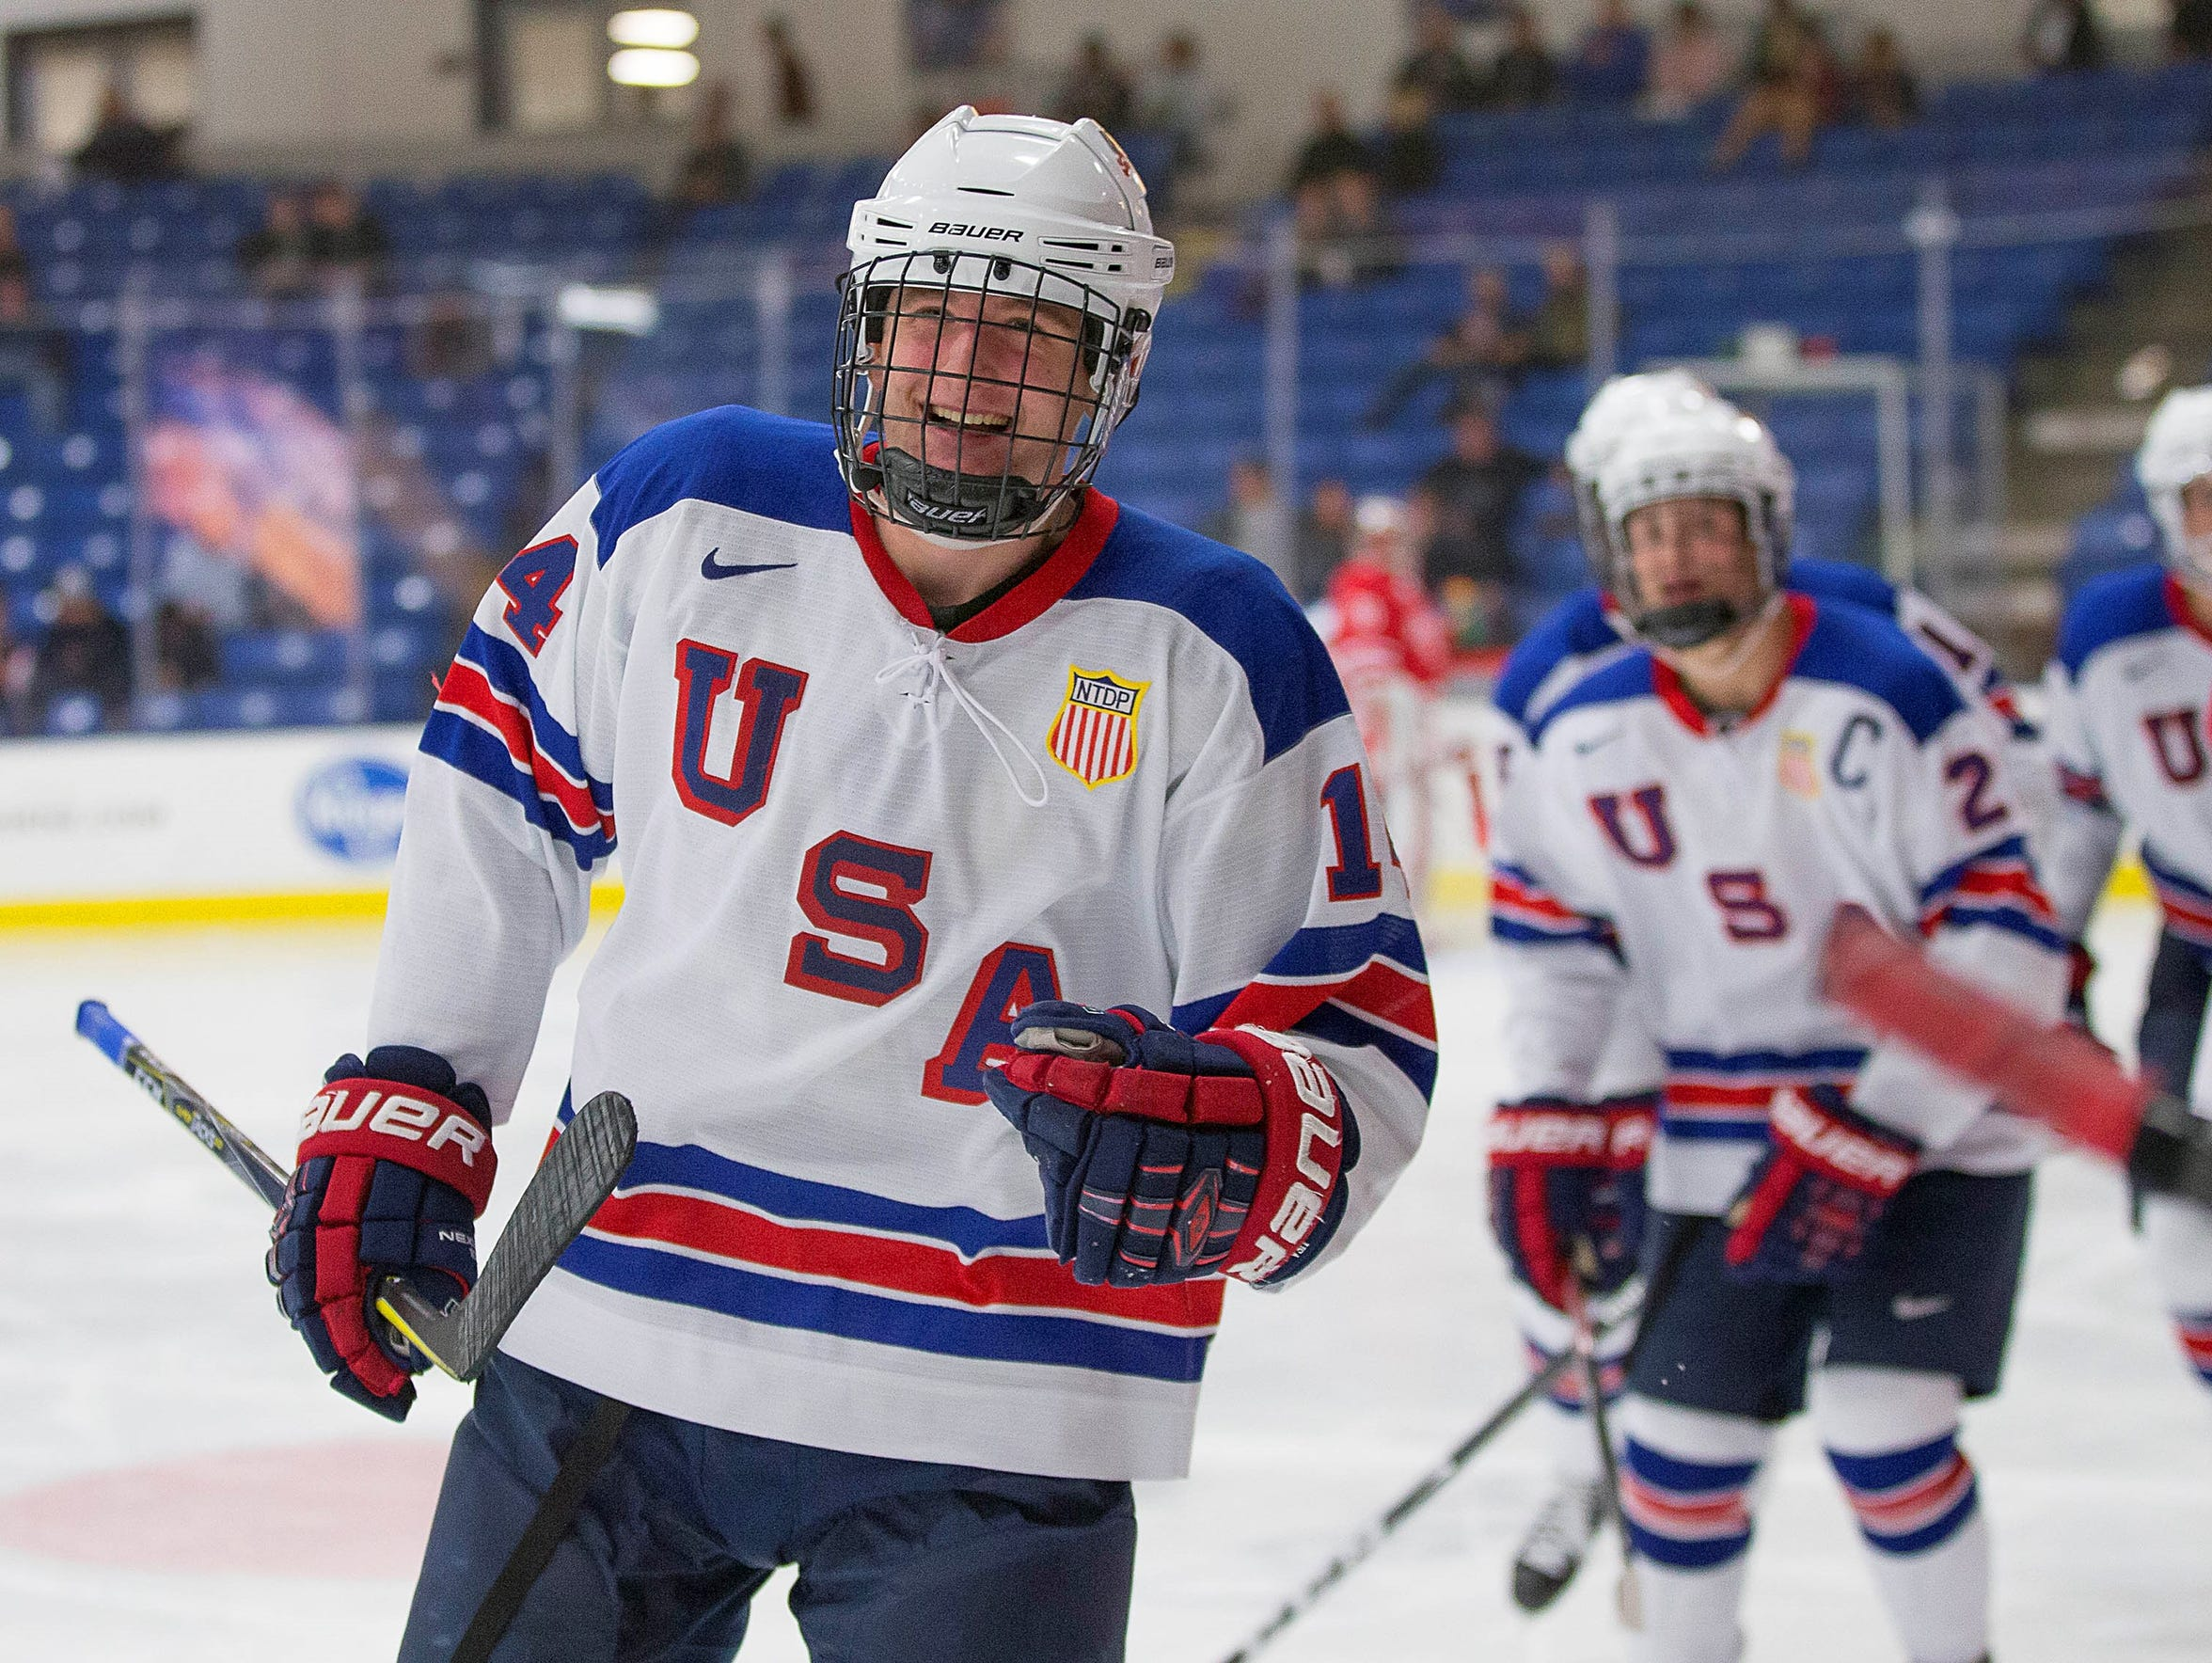 Jack DeBoer (14) is all smiles after Team USA scores